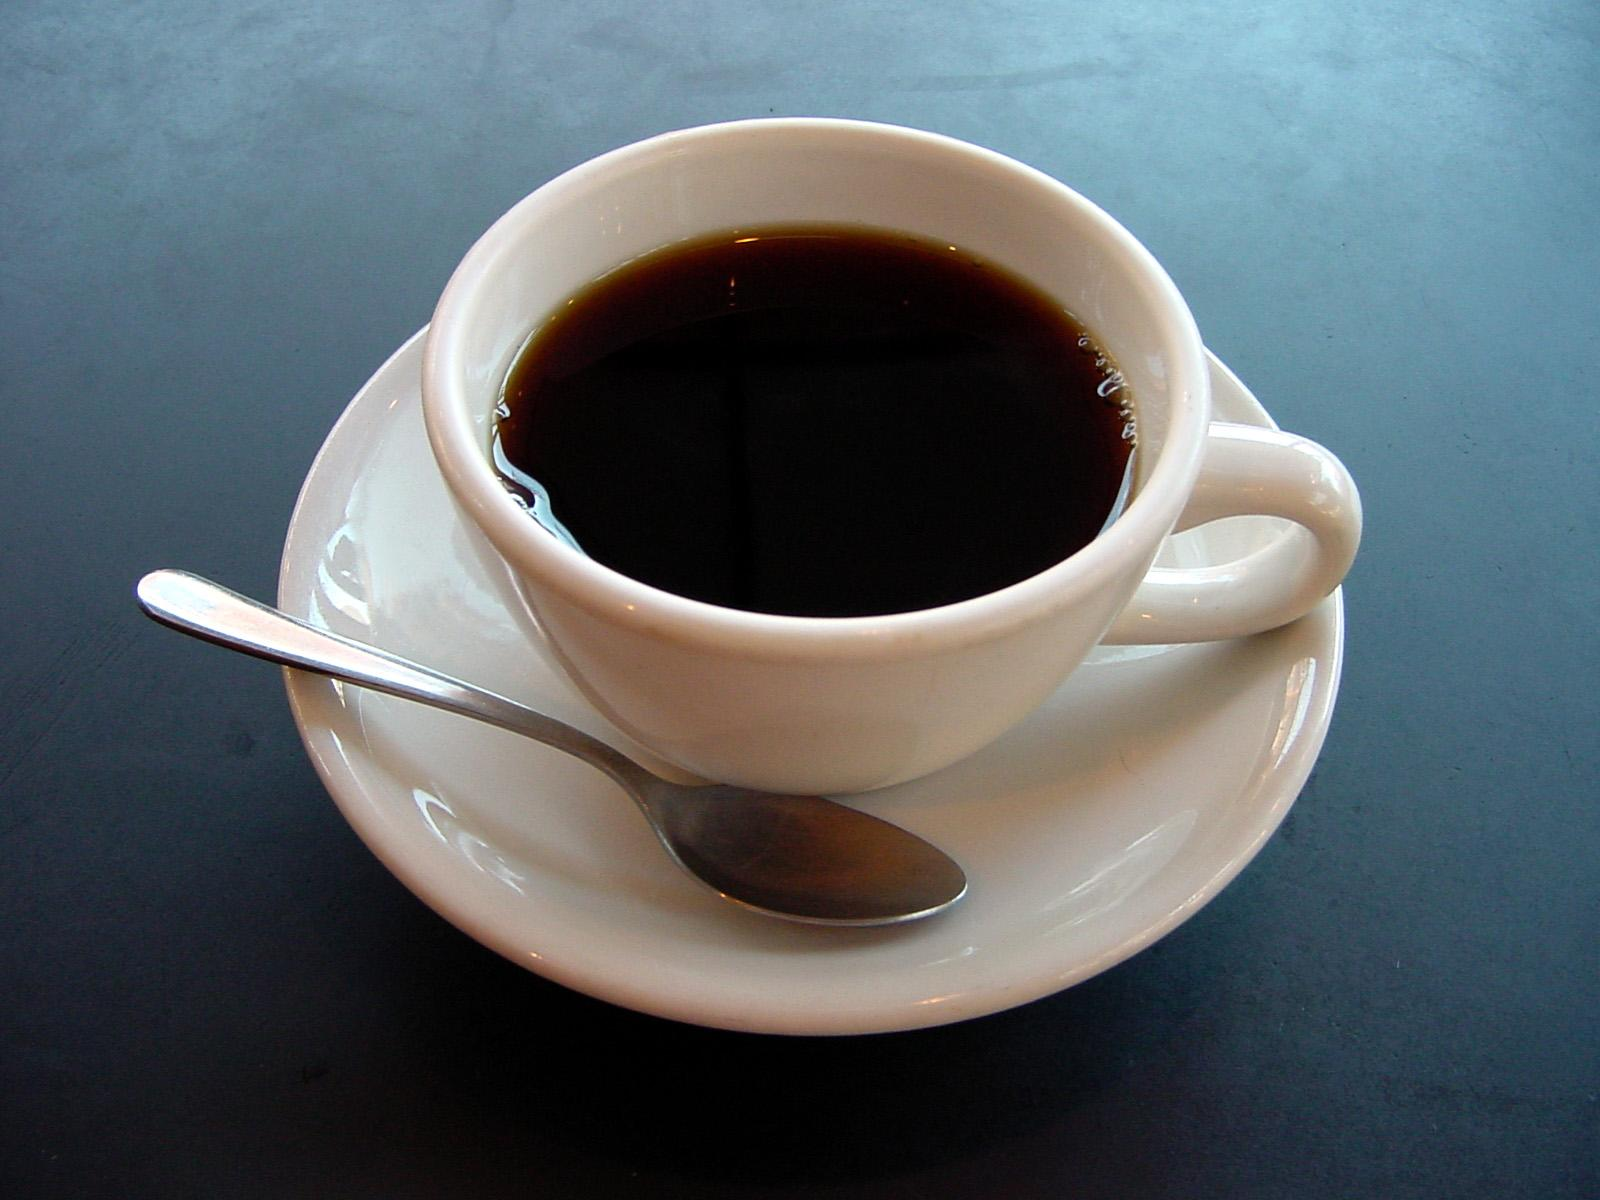 While caffeine can be a tonic for alertness, it also has multiple other effects, including insomnia, stomach irritation and nervousness.